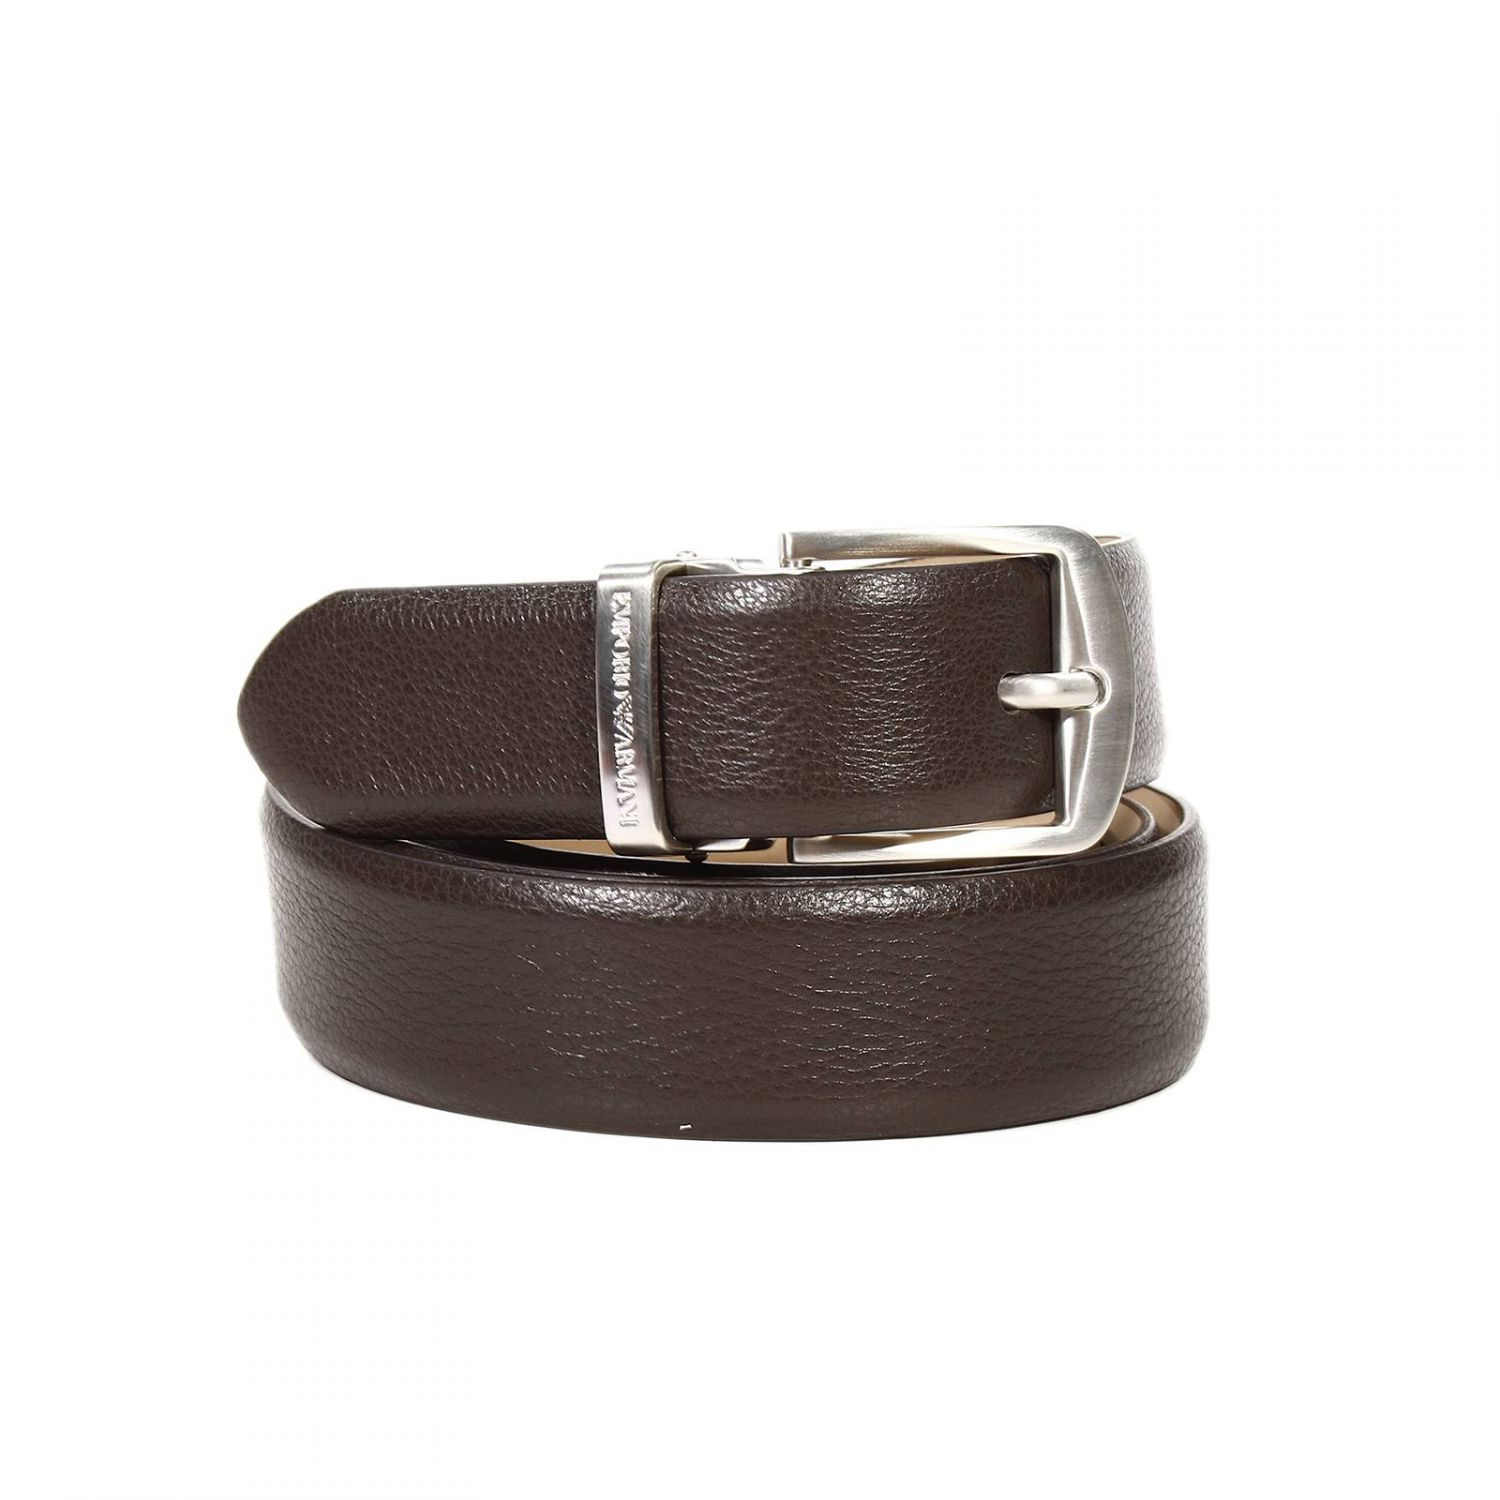 Giorgio armani Belt Classic Buckle Leather in Brown for ...